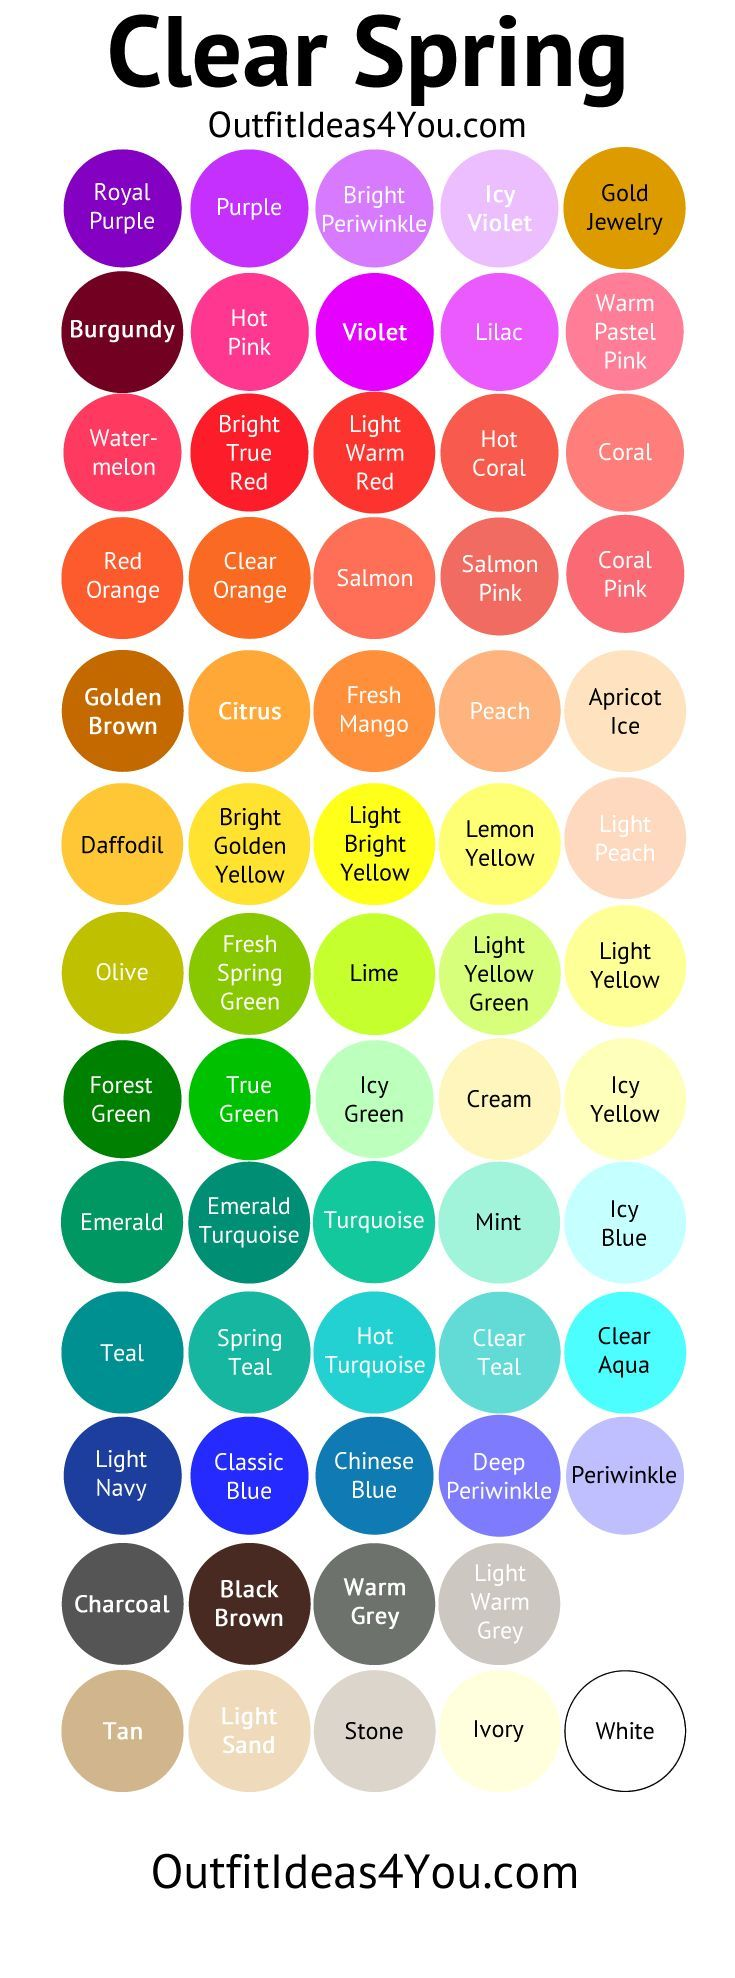 117 best clearbright spring color palette images on pinterest 117 best clearbright spring color palette images on pinterest bright spring clear spring and spring colors nvjuhfo Gallery